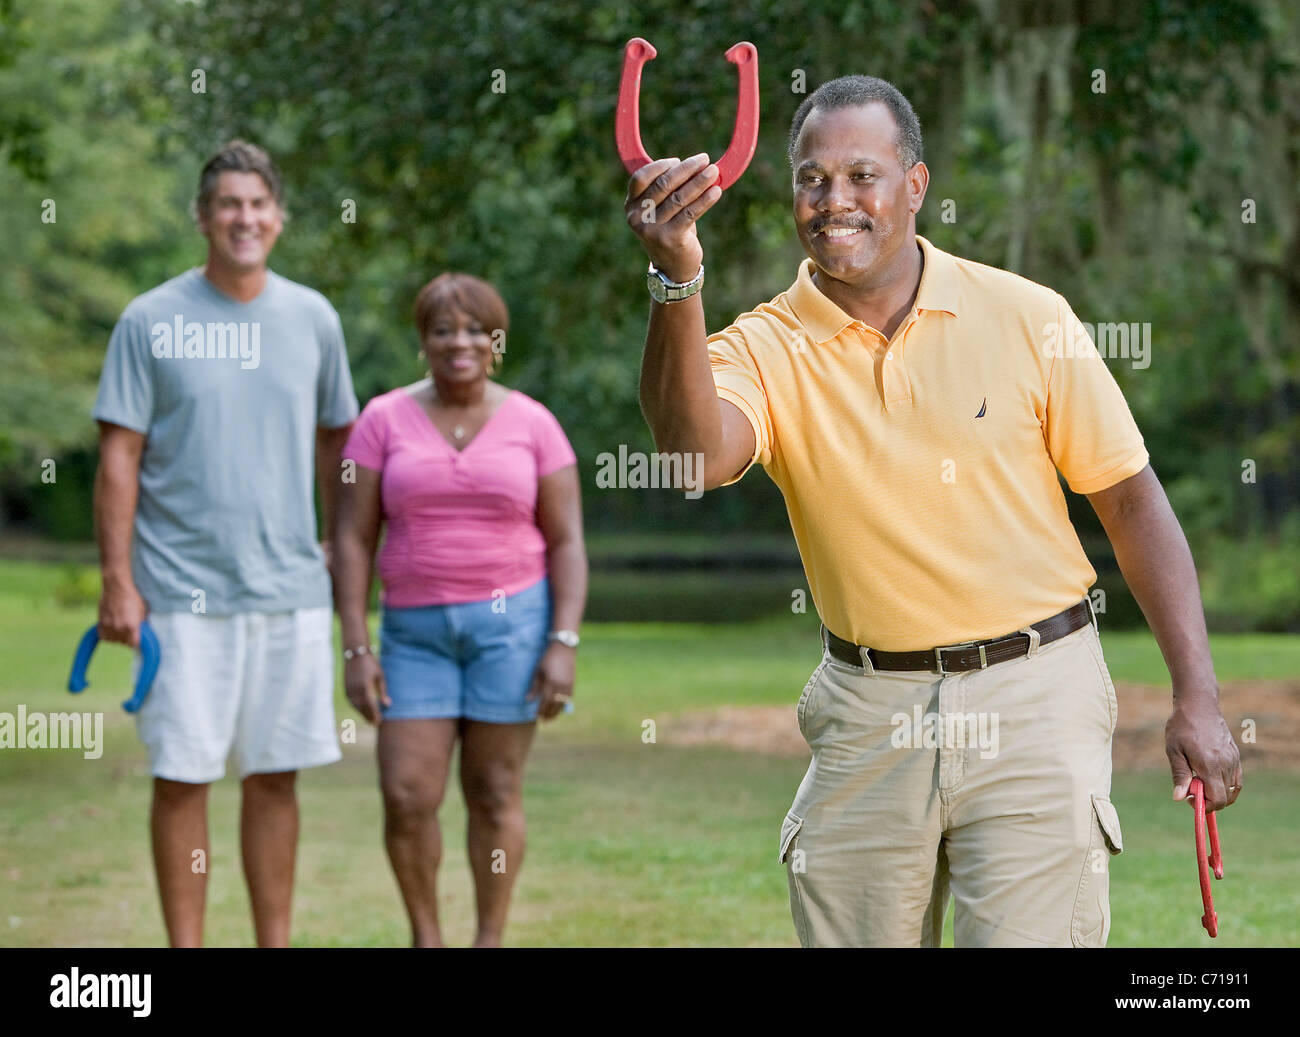 Playing Horseshoes High Resolution Stock Photography and Images - Alamy